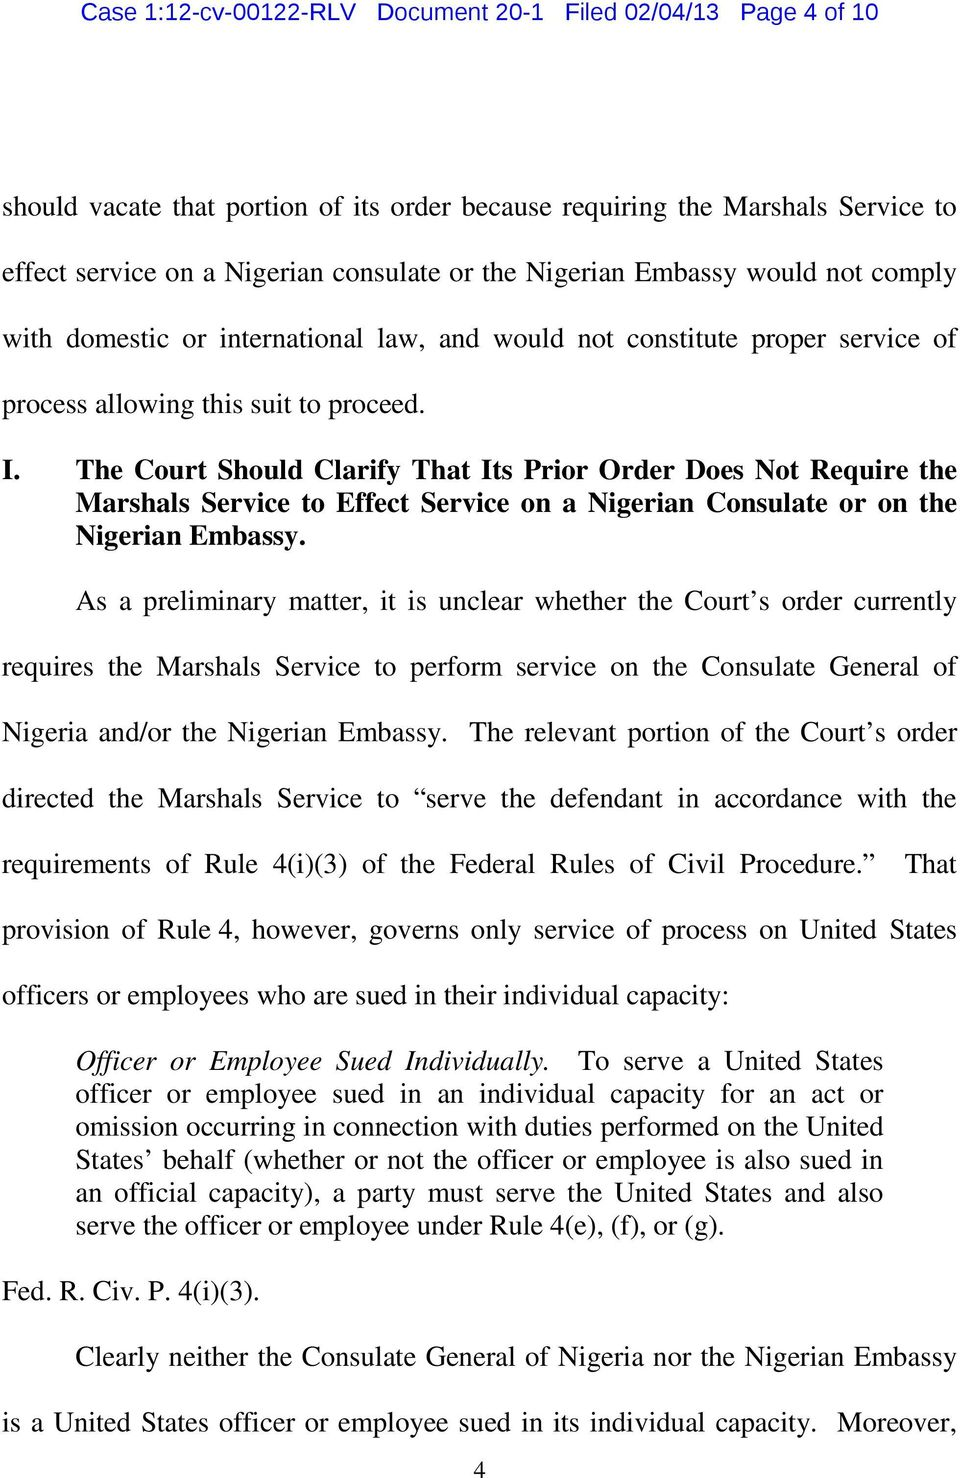 The Court Should Clarify That Its Prior Order Does Not Require the Marshals Service to Effect Service on a Nigerian Consulate or on the Nigerian Embassy.